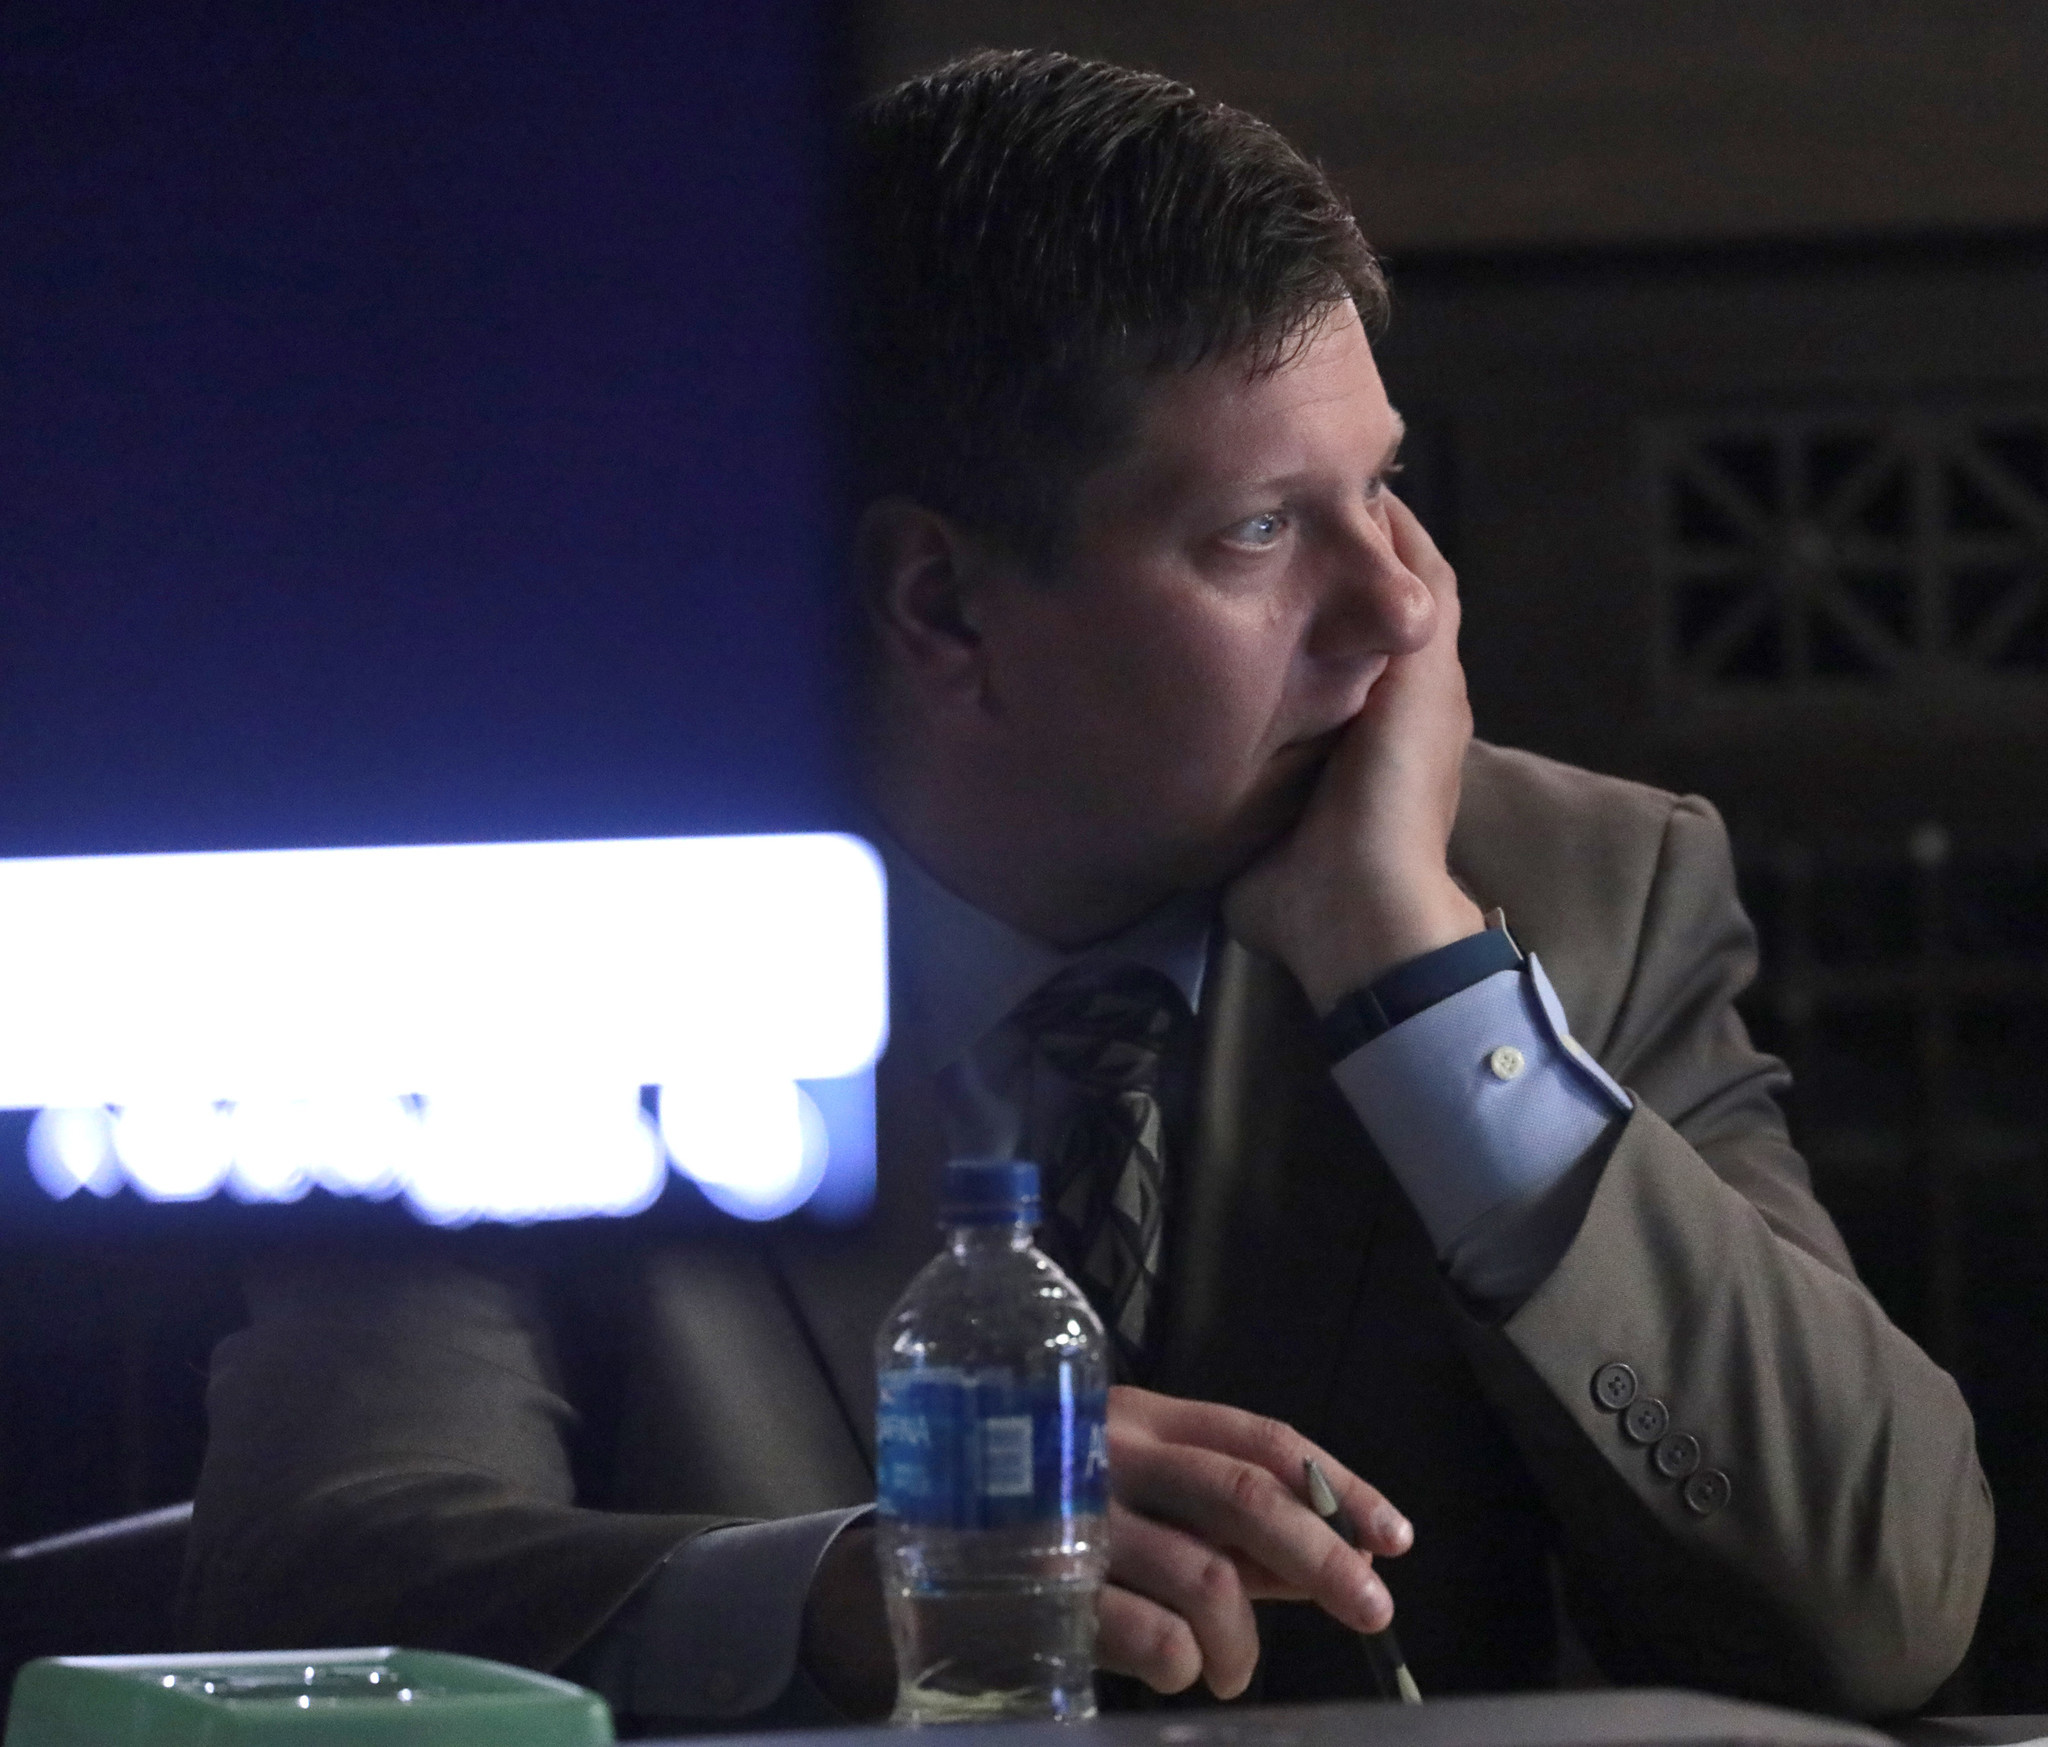 Rulings in Laquan McDonald cases leave police reformers questioning if progress has been made